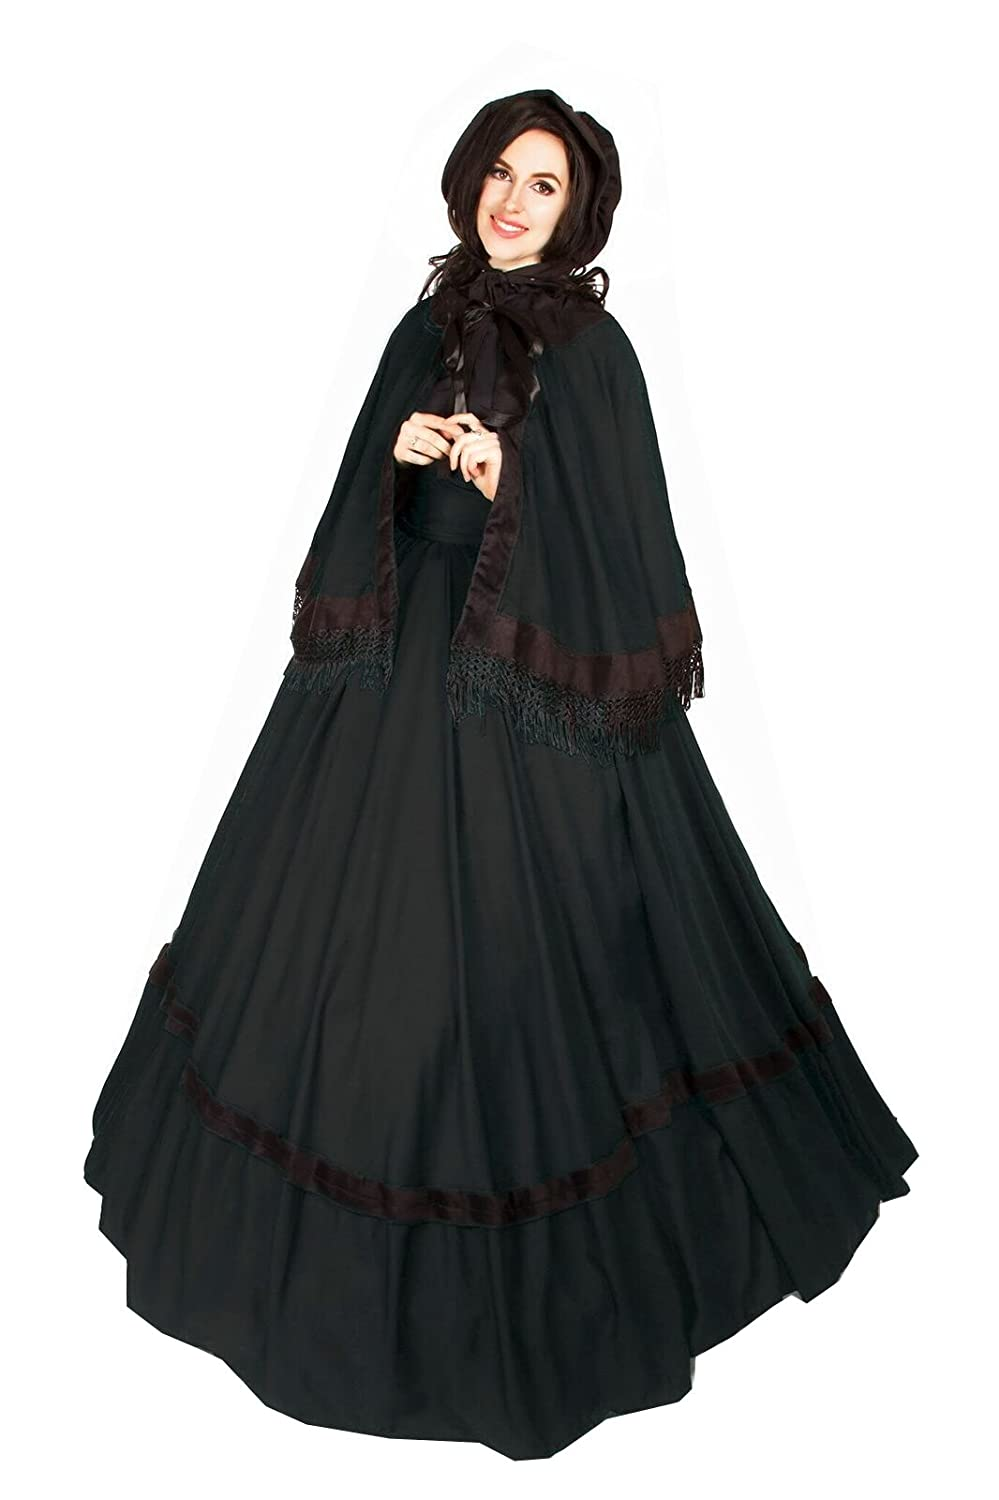 Victorian Dresses | Victorian Ballgowns | Victorian Clothing Reminisce Civil War reenactment Dickens Faire Victorian 3 Piece Cape Sash Dress $49.99 AT vintagedancer.com